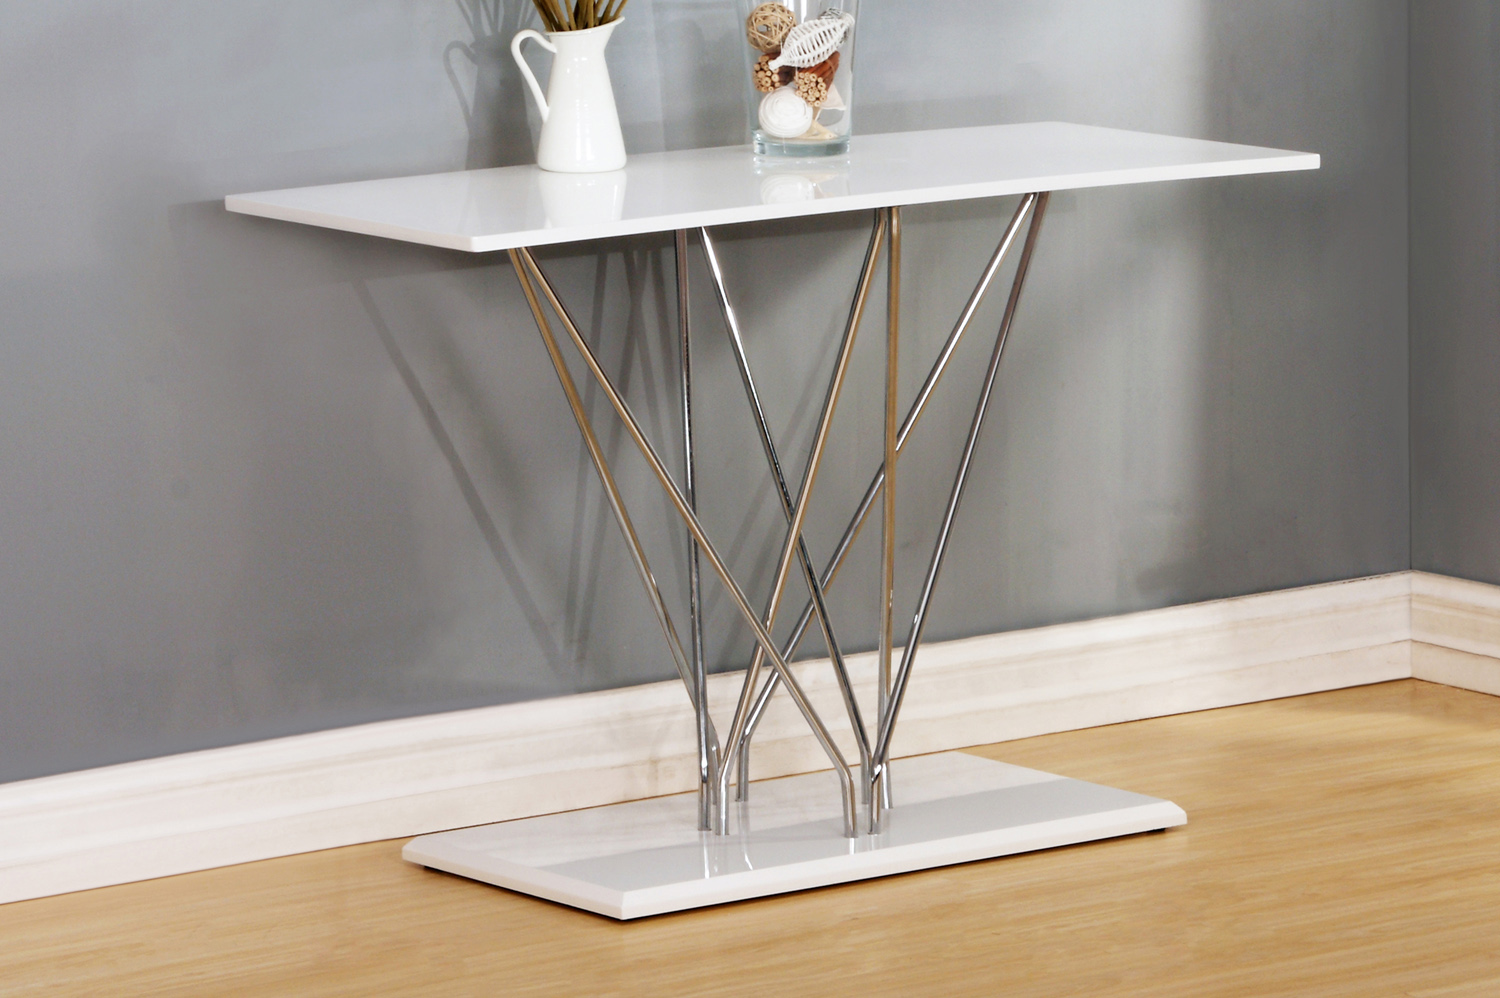 Hagley High Gloss White Console Table